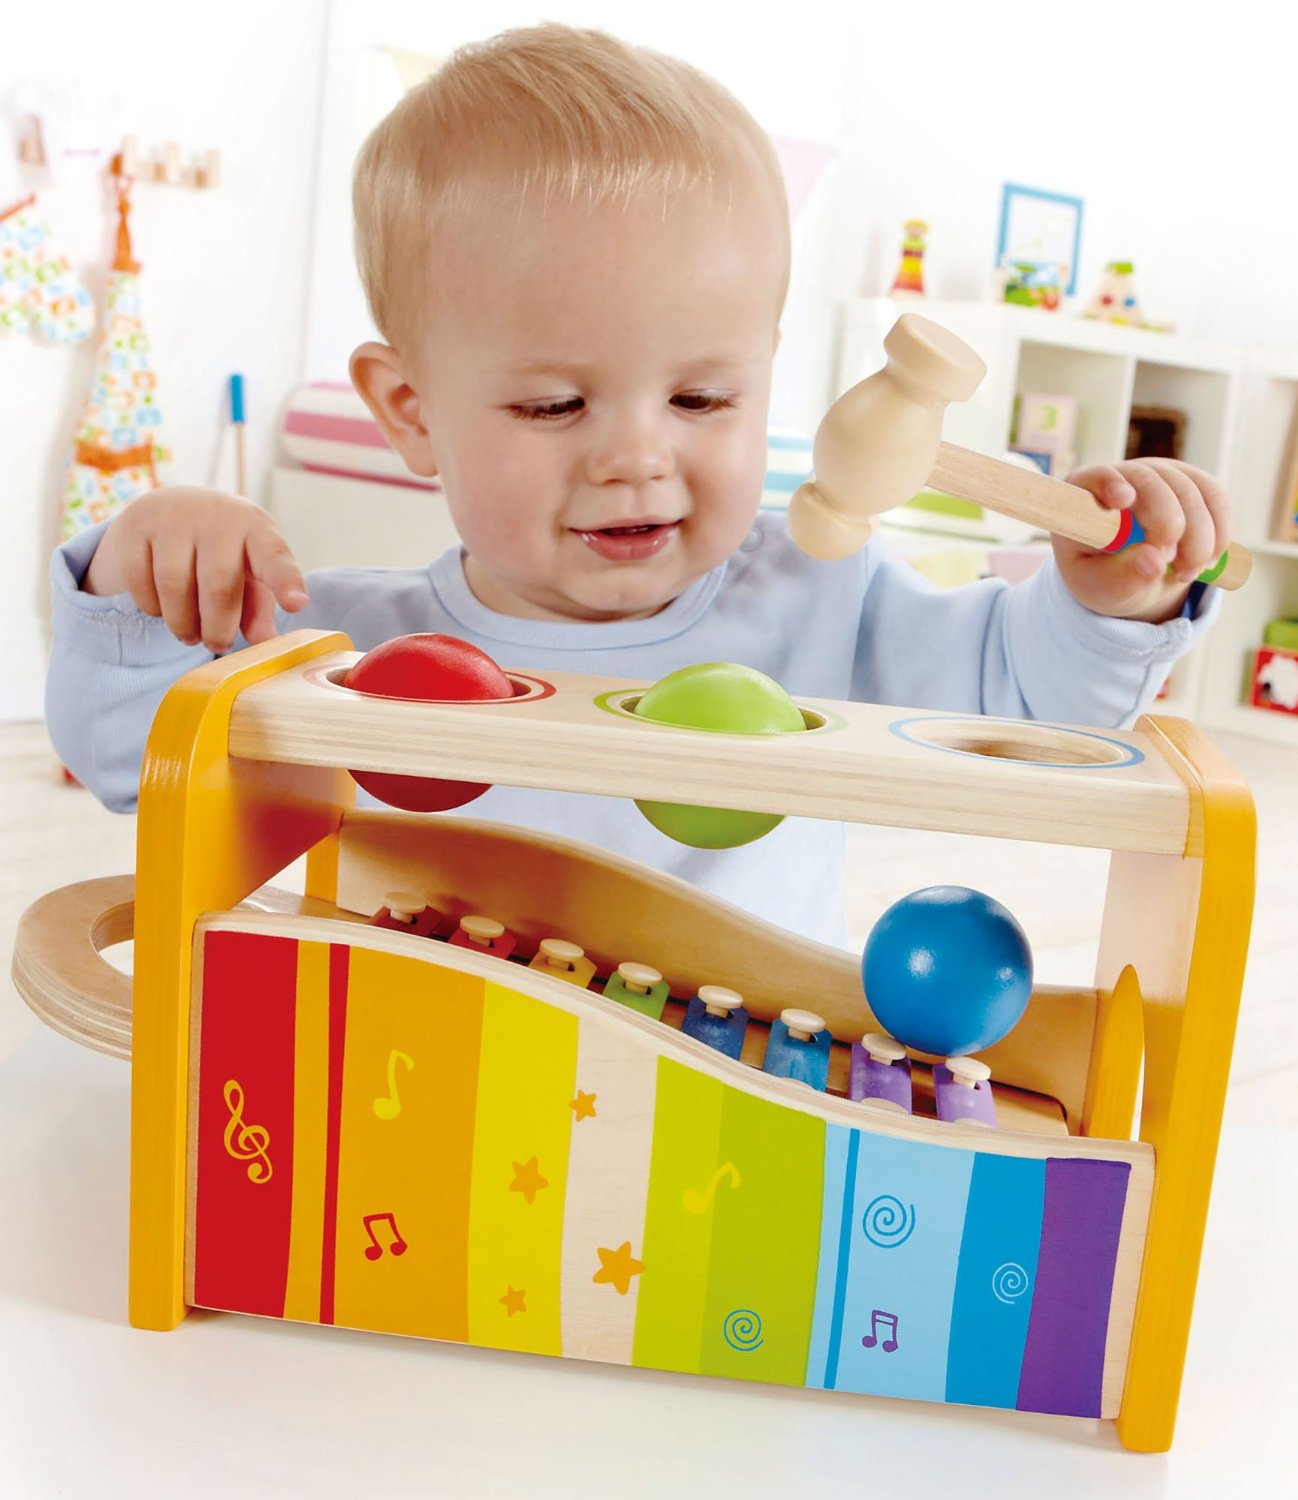 Hape - Pound & Tap Bench with Slide out Xylophone wooden toys